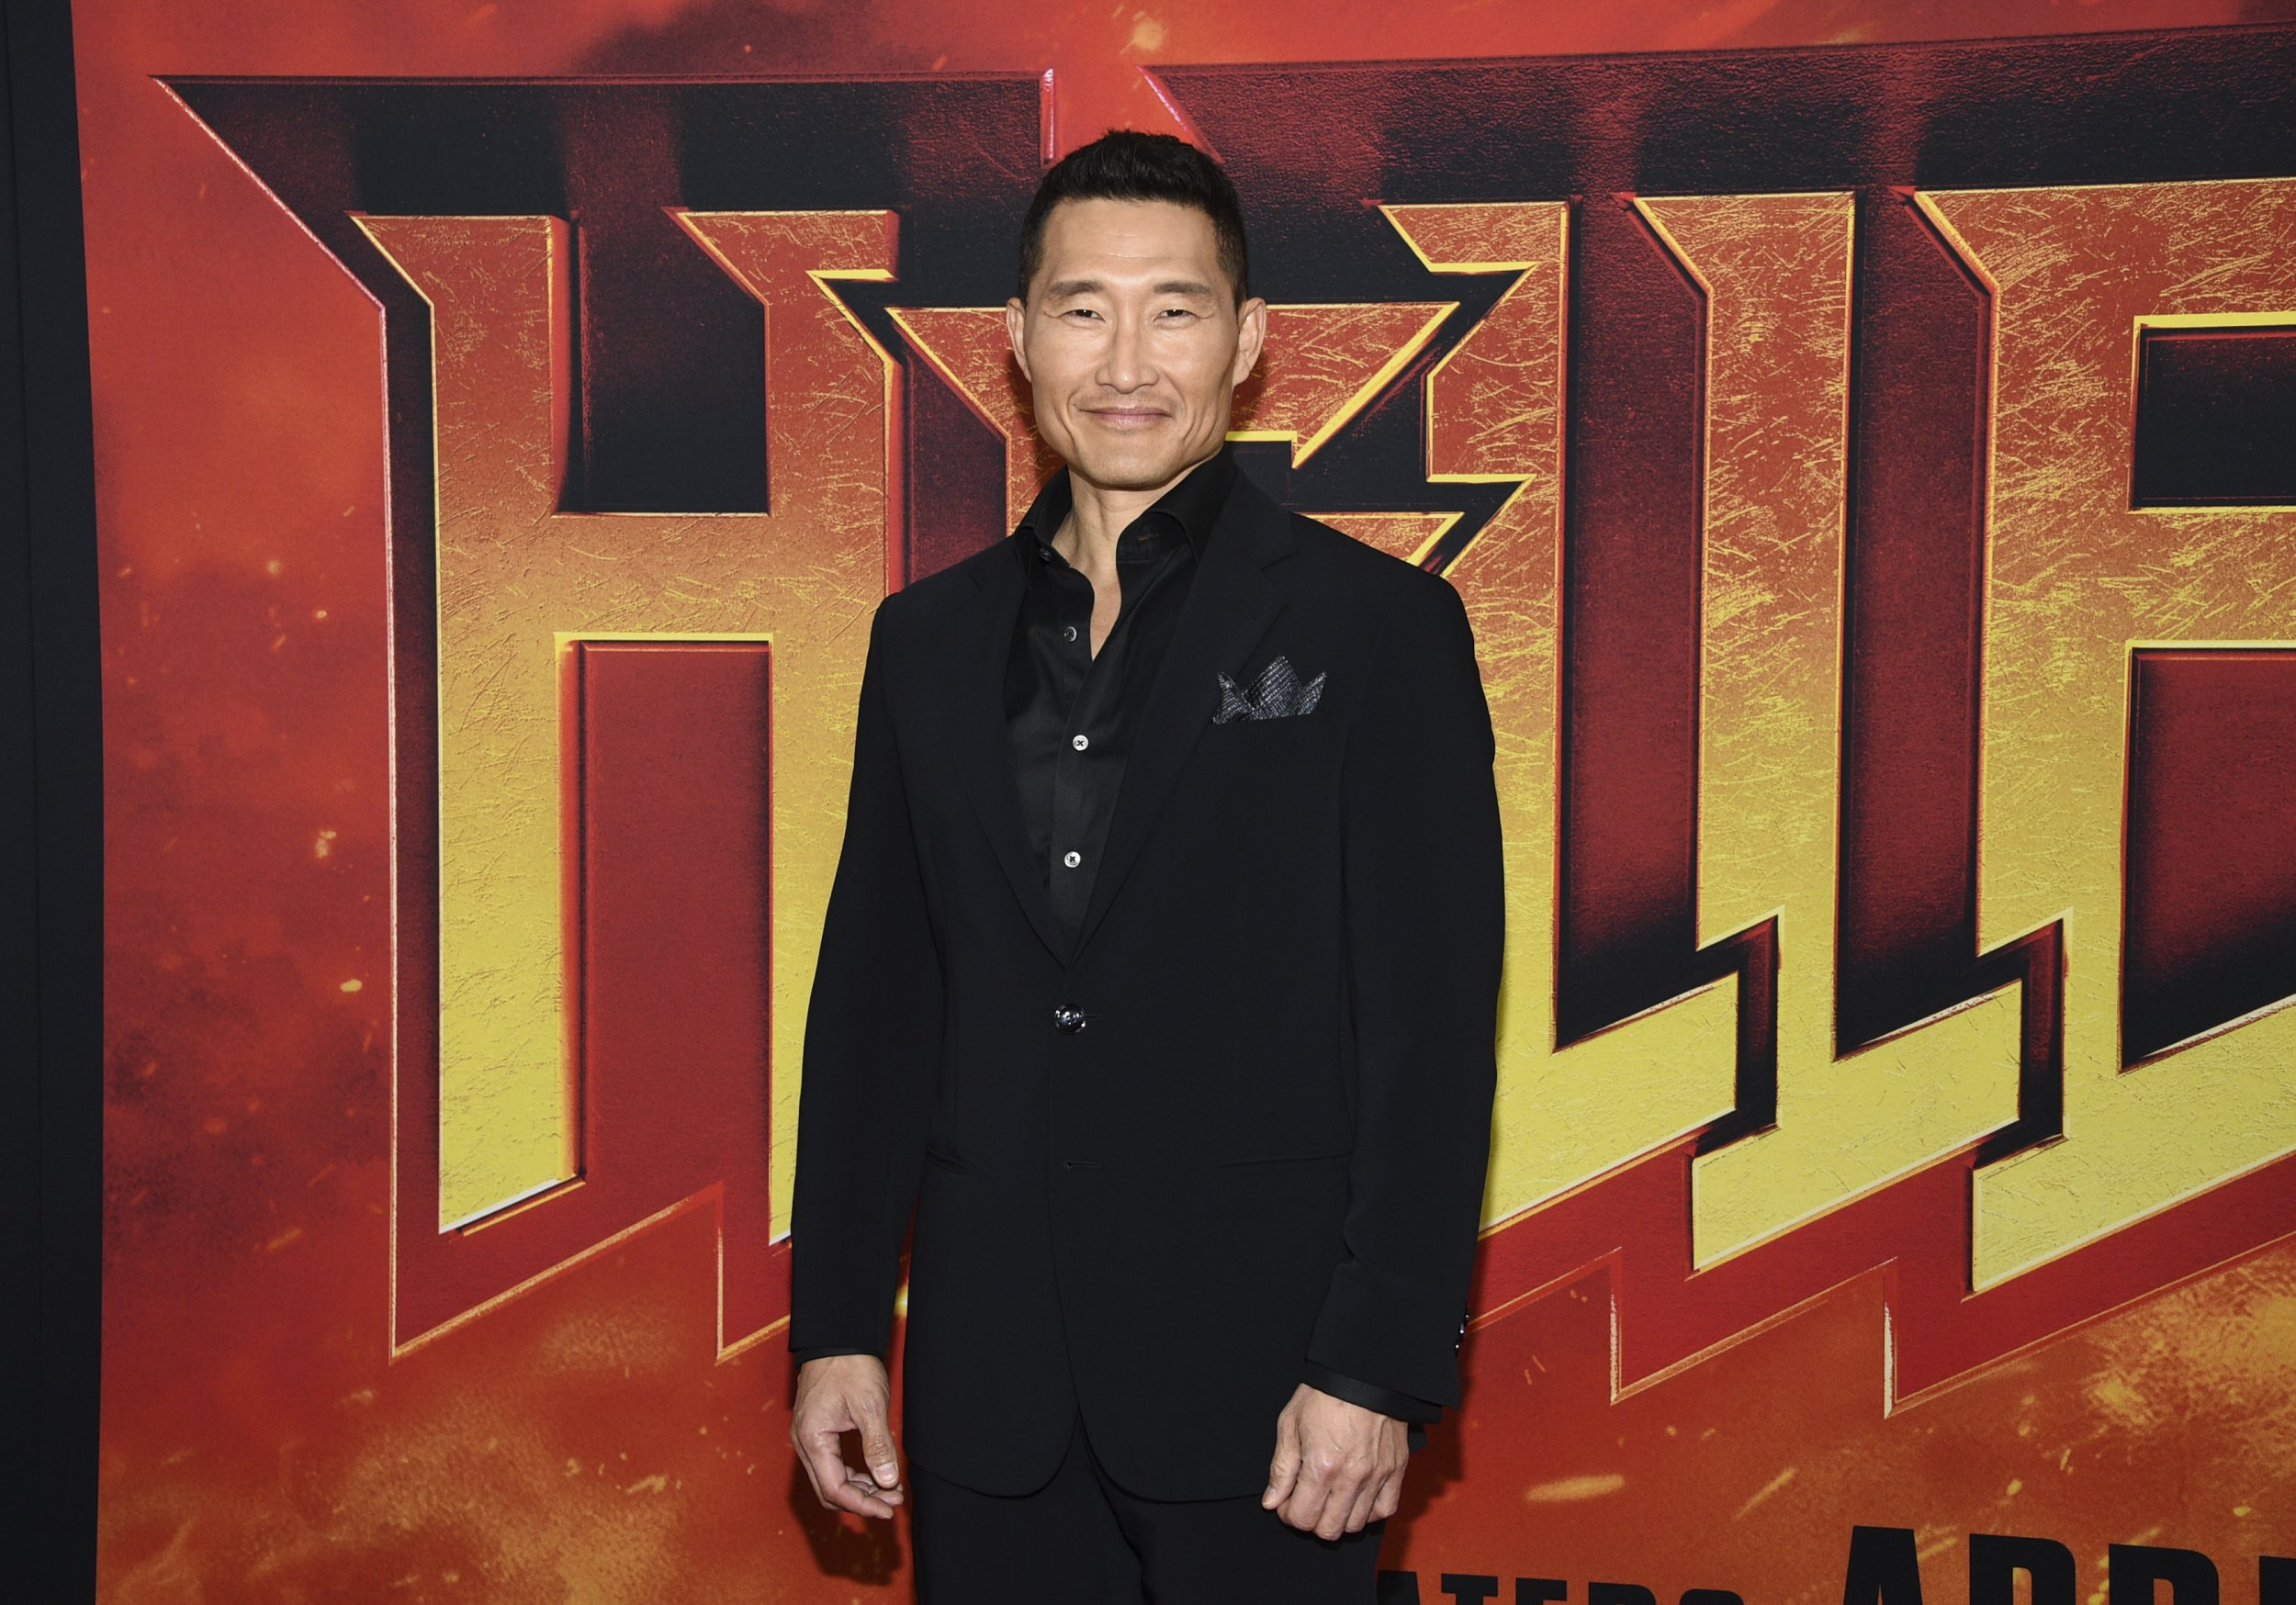 """Actor Daniel Dae Kim attends a special screening of """"Hellboy"""" at AMC Lincoln Square on Tuesday, April 9, 2019, in New York. (Photo by Evan Agostini/Invision/AP)"""